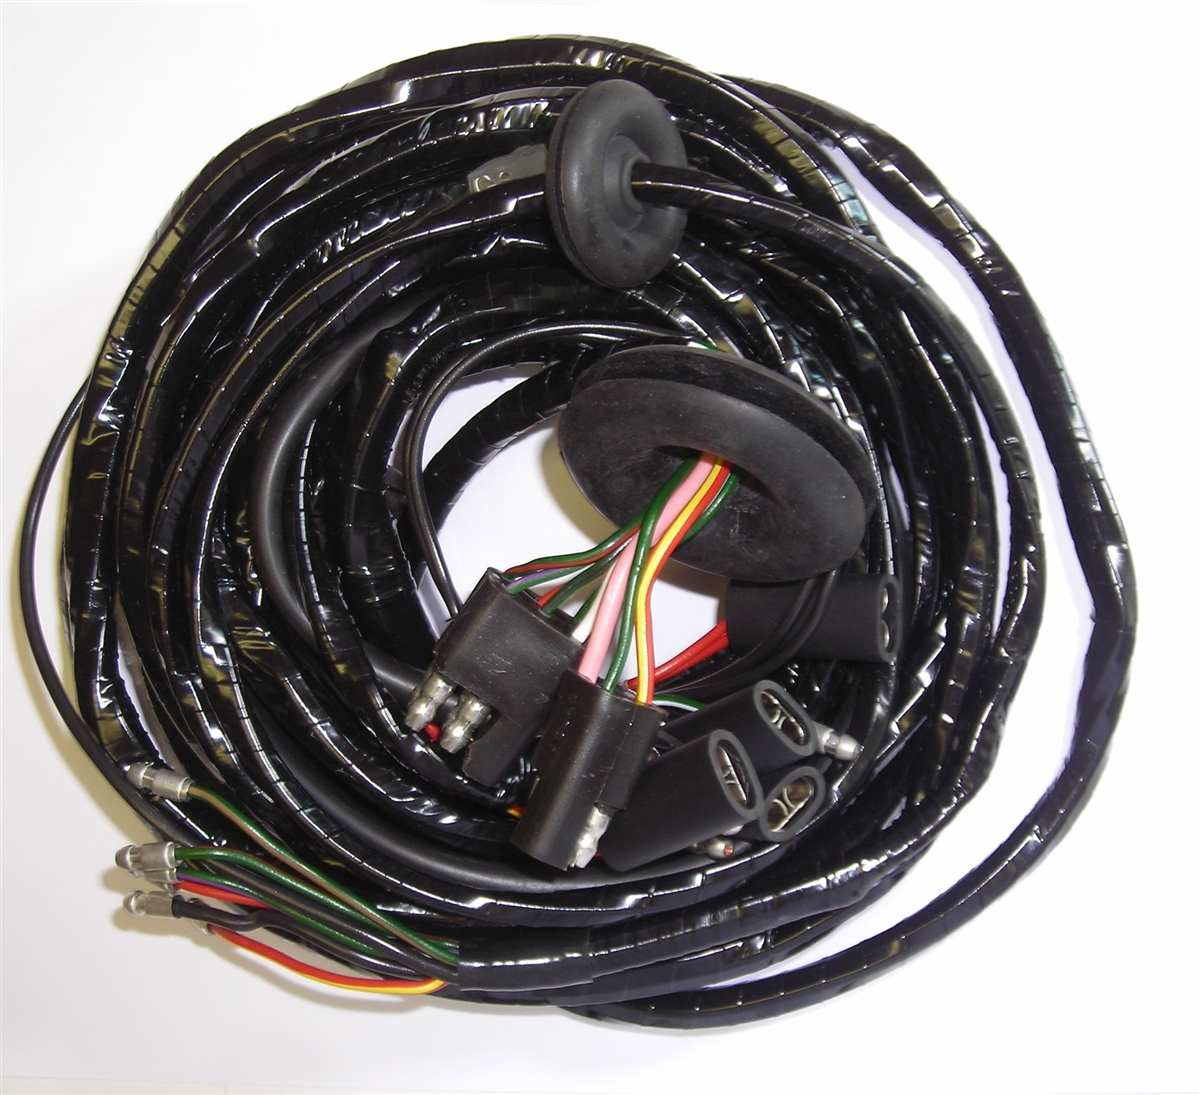 land rover wiring harness wiring diagram \u2022 land rover lr4 trailer wiring harness land rover body wiring harness rh britishwiring com 2009 land rover lr2 wiring harness 2016 land rover discovery wiring harness